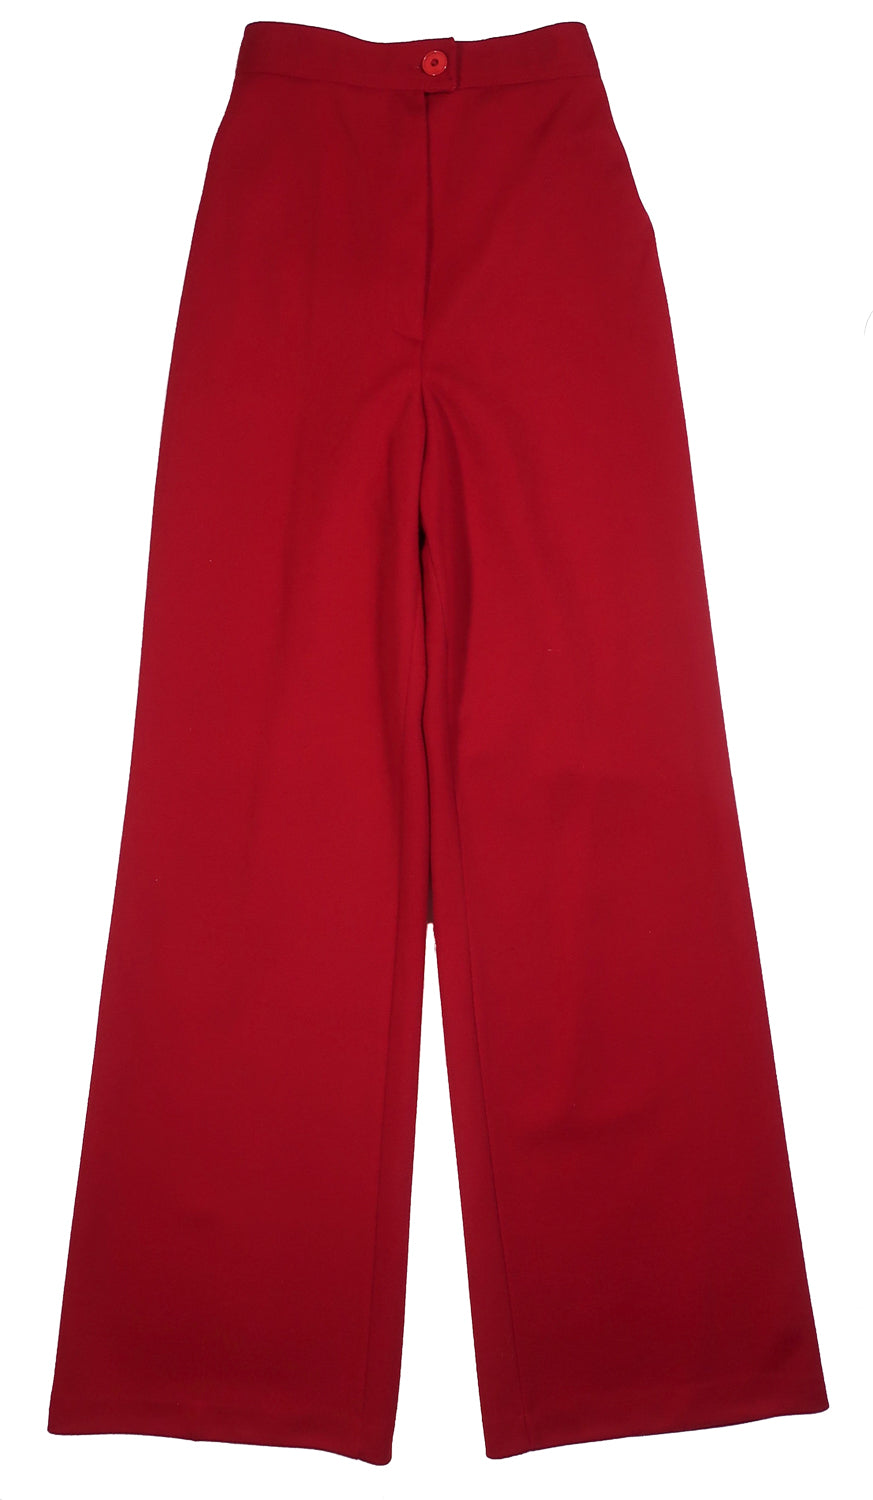 "Second Room Vintage Clothing. Meet your new, comfy as sweats, vintage pants! These cranberry high waist, wide leg pants are super soft, and really comfortable, with elastic at the back. No pockets, zipper and button closure, 13"" rise, and 10.5"" ankle opening. Free North American shipping on all orders."